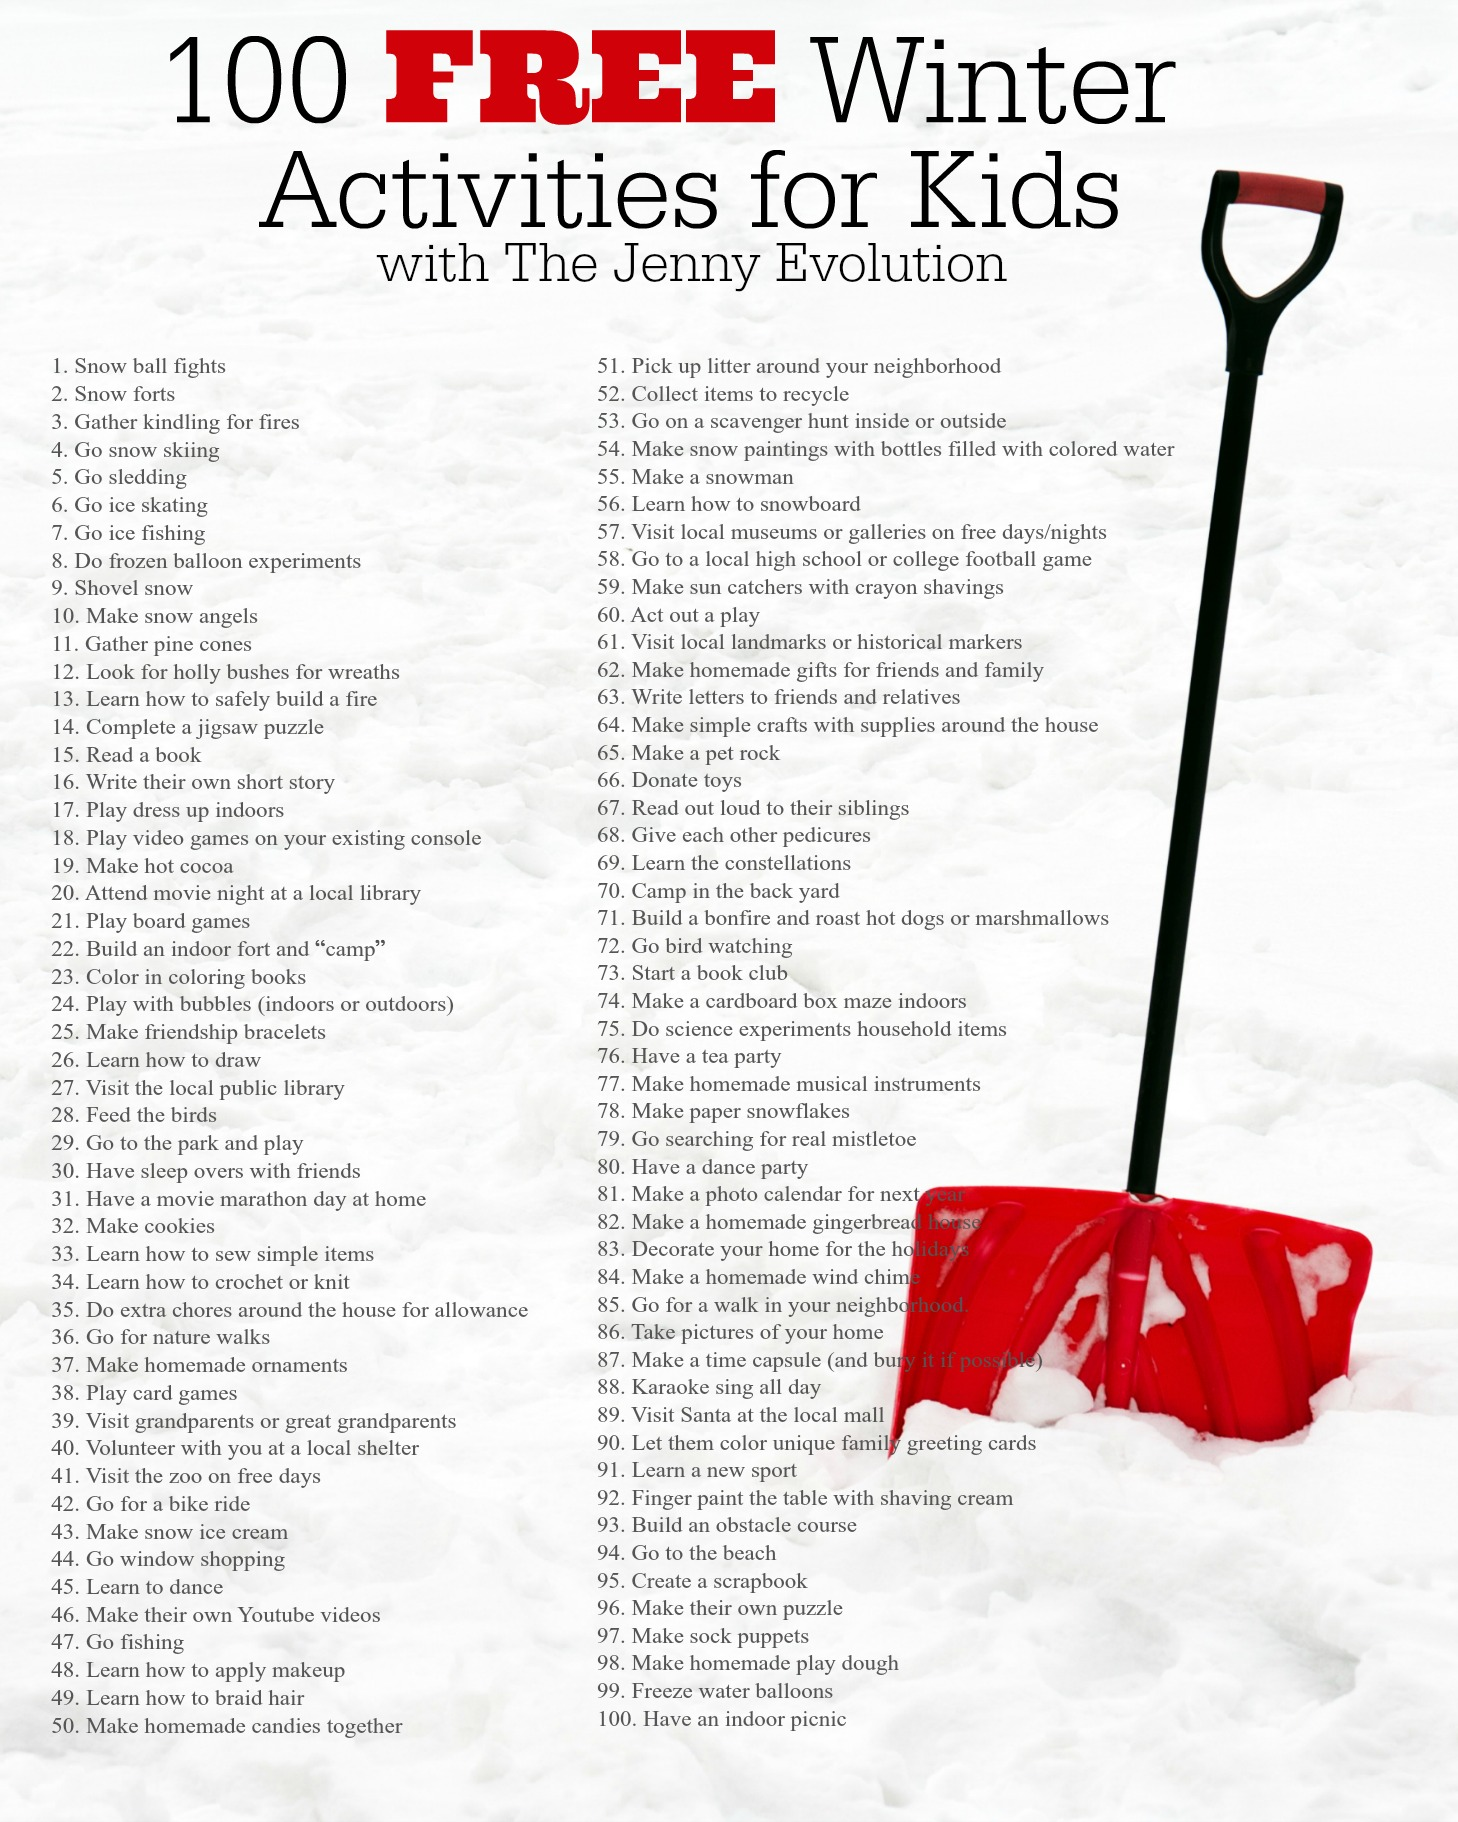 100 Free Winter Actvities for Kids Printable